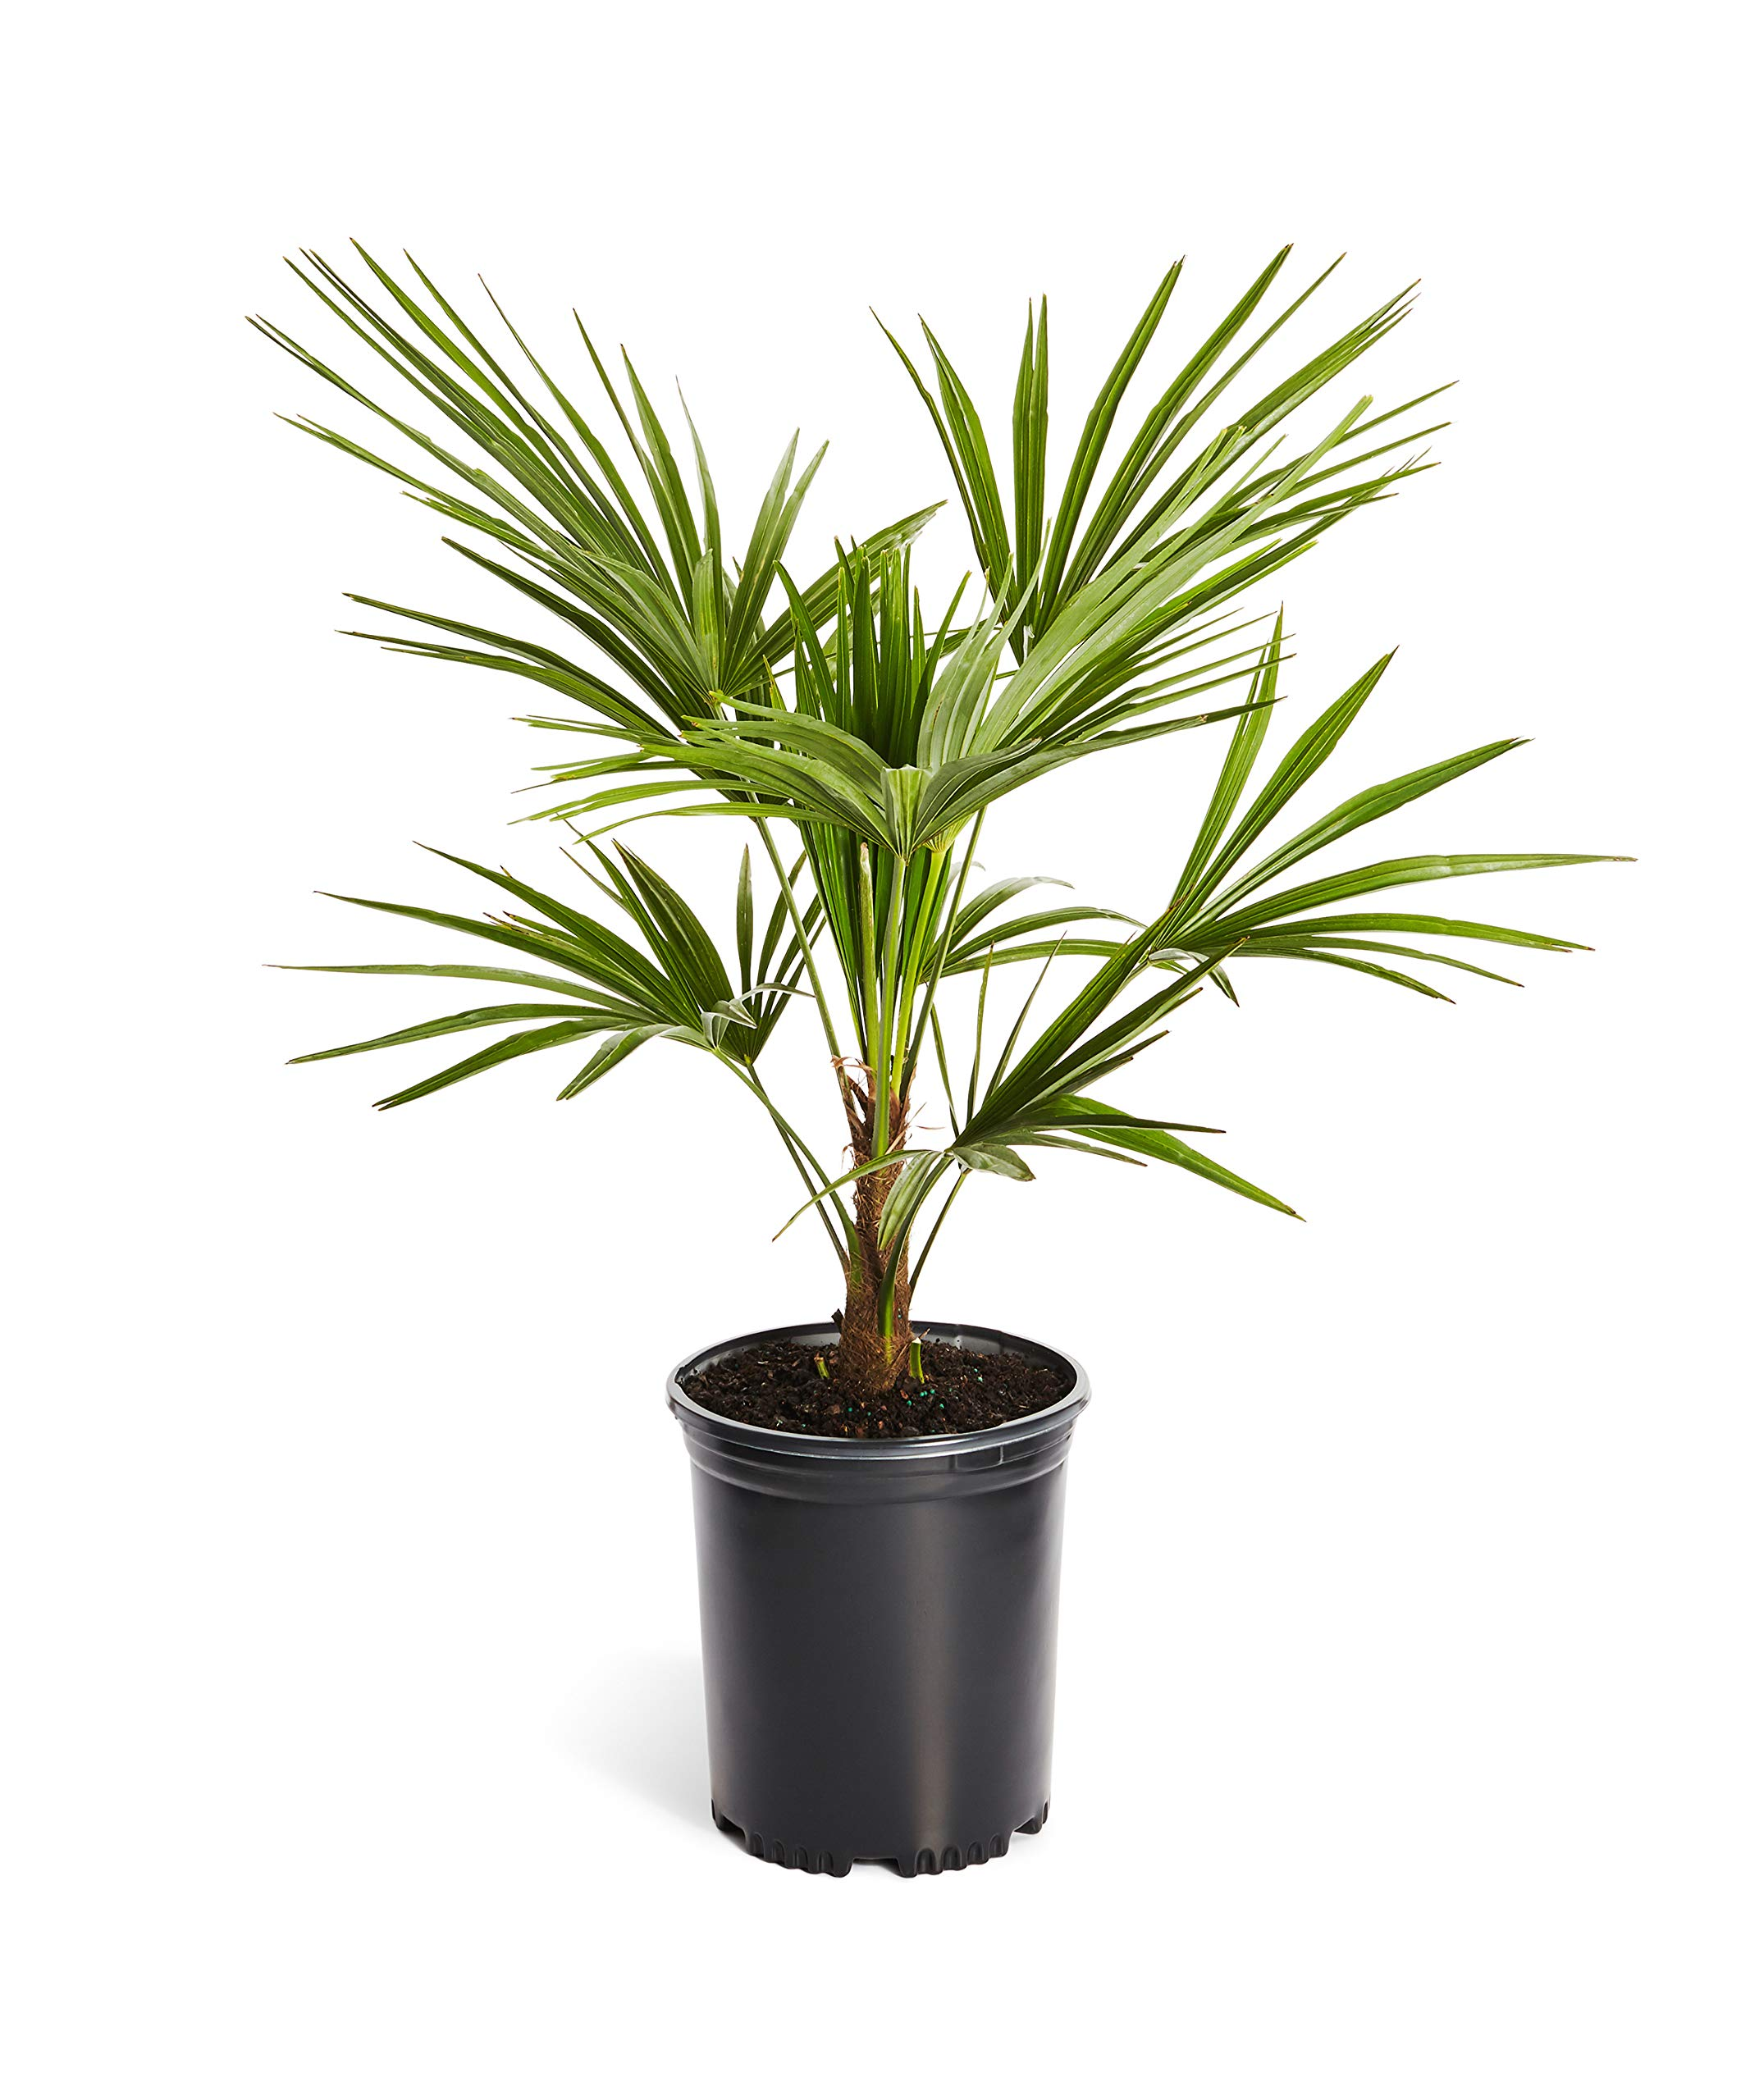 Windmill Palm Tree- Large Cold Hardy Palm Trees- Trachycarpus Fortunei- Big 1 Gallon or 3 Gallon Palms Available - 3 Gallon